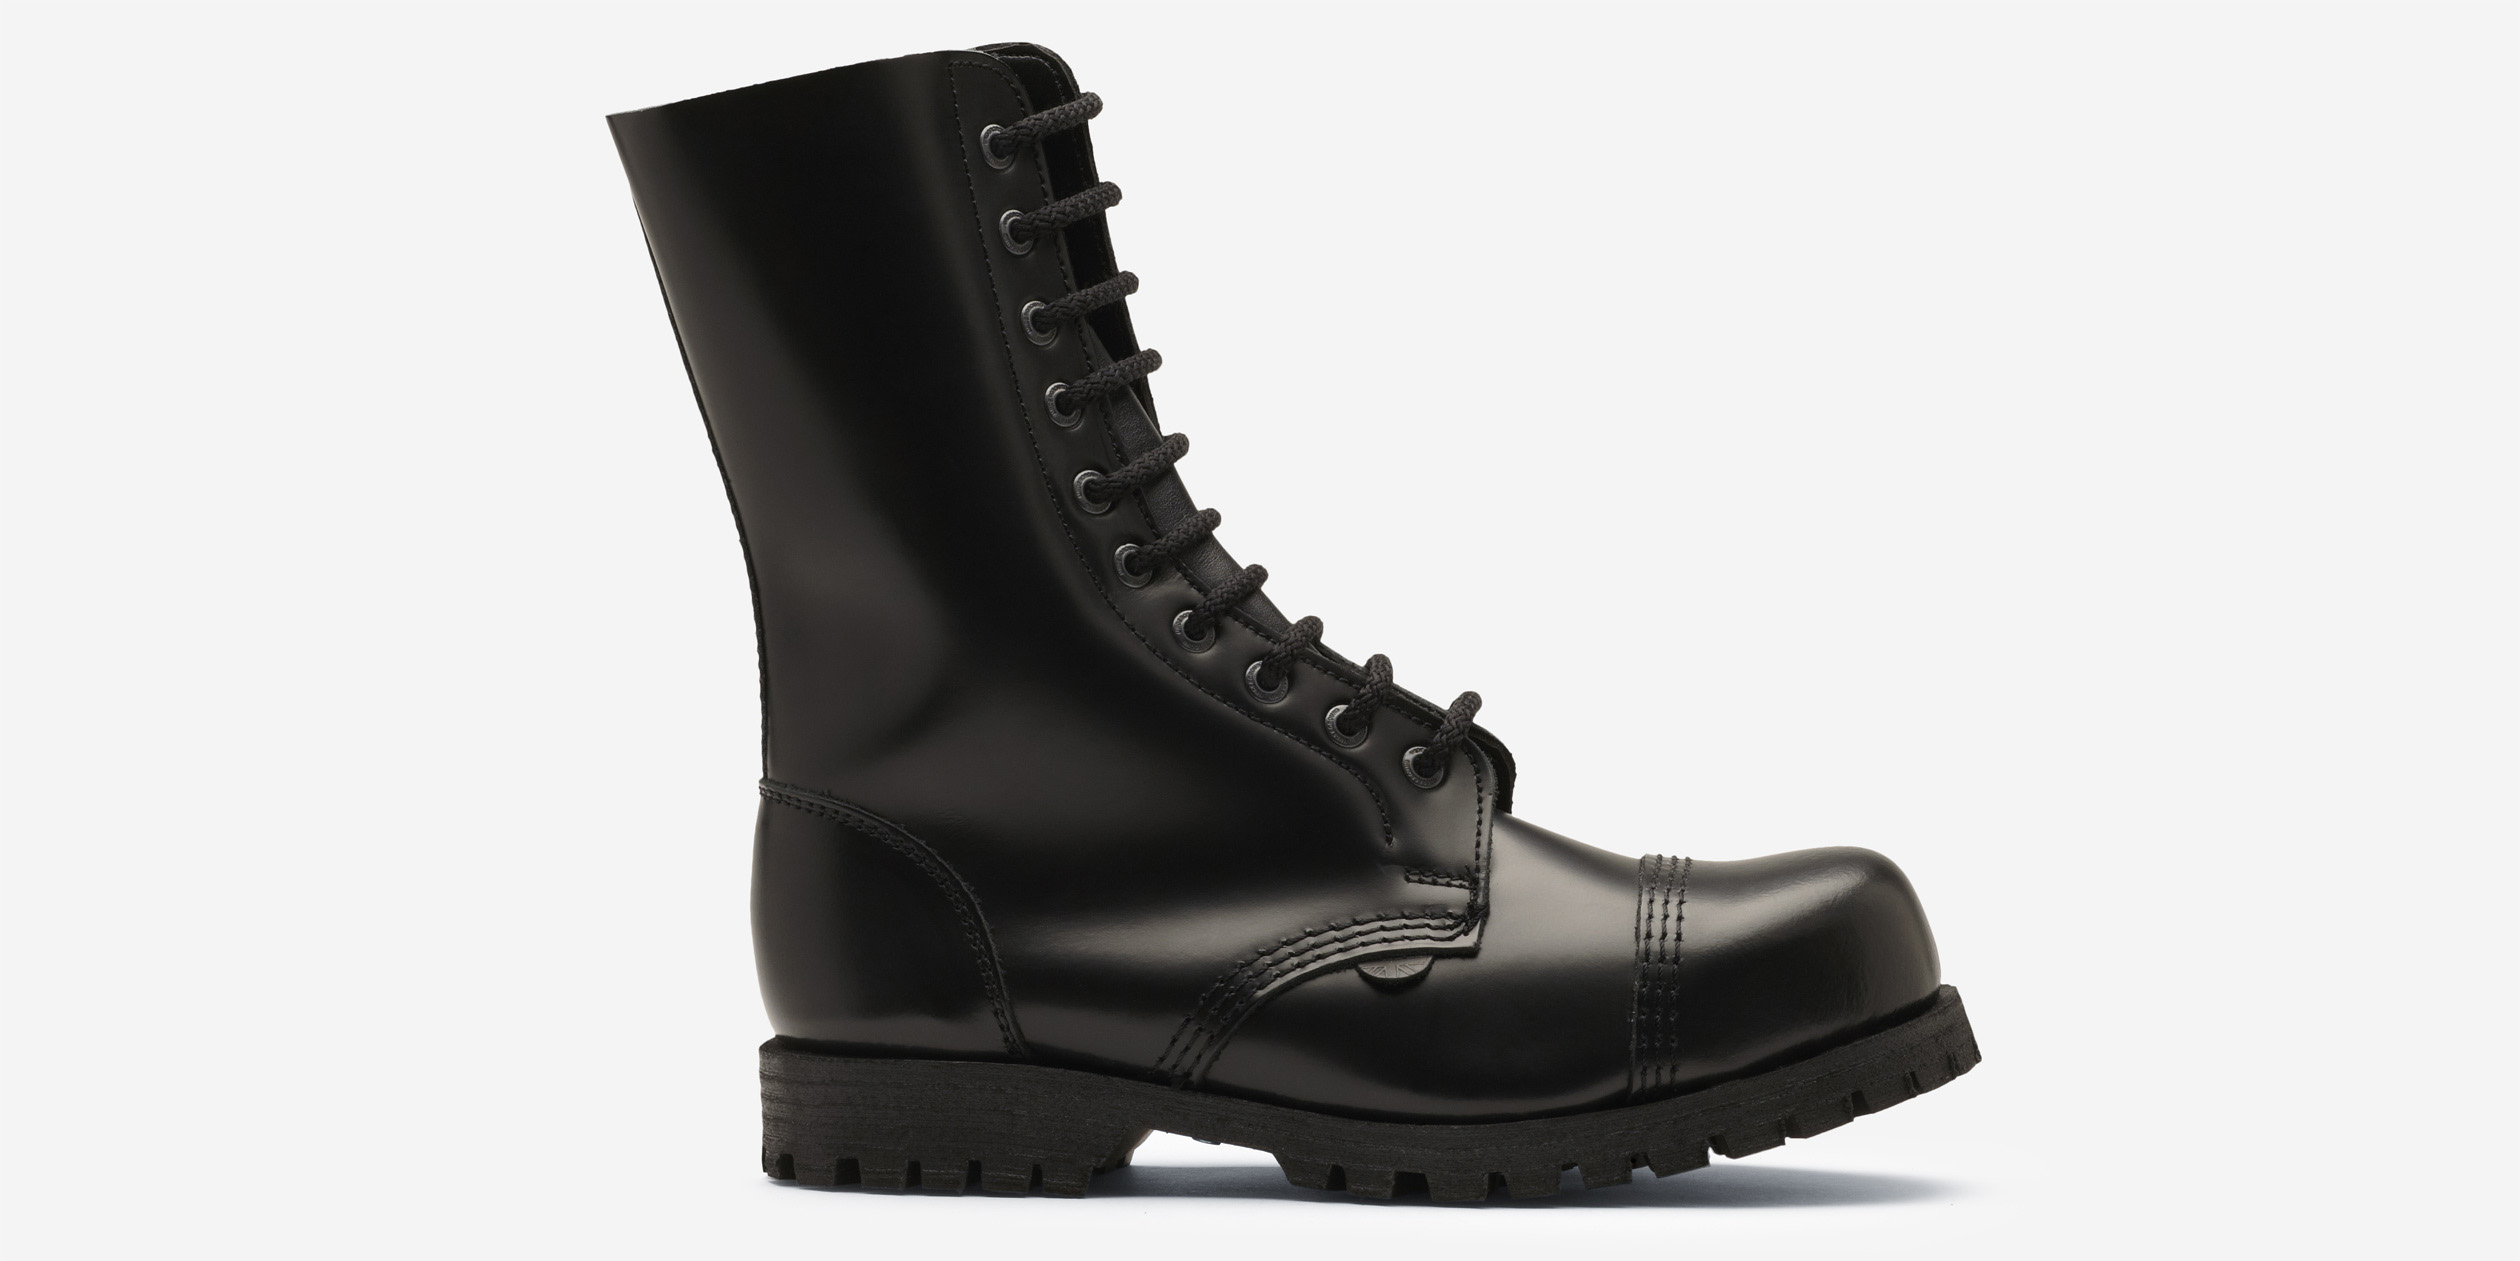 b60931728c1bc7 COMMANDO 10 EYELET STEEL CAP BOOT - BLACK LEATHER - SINGLE SOLE ...